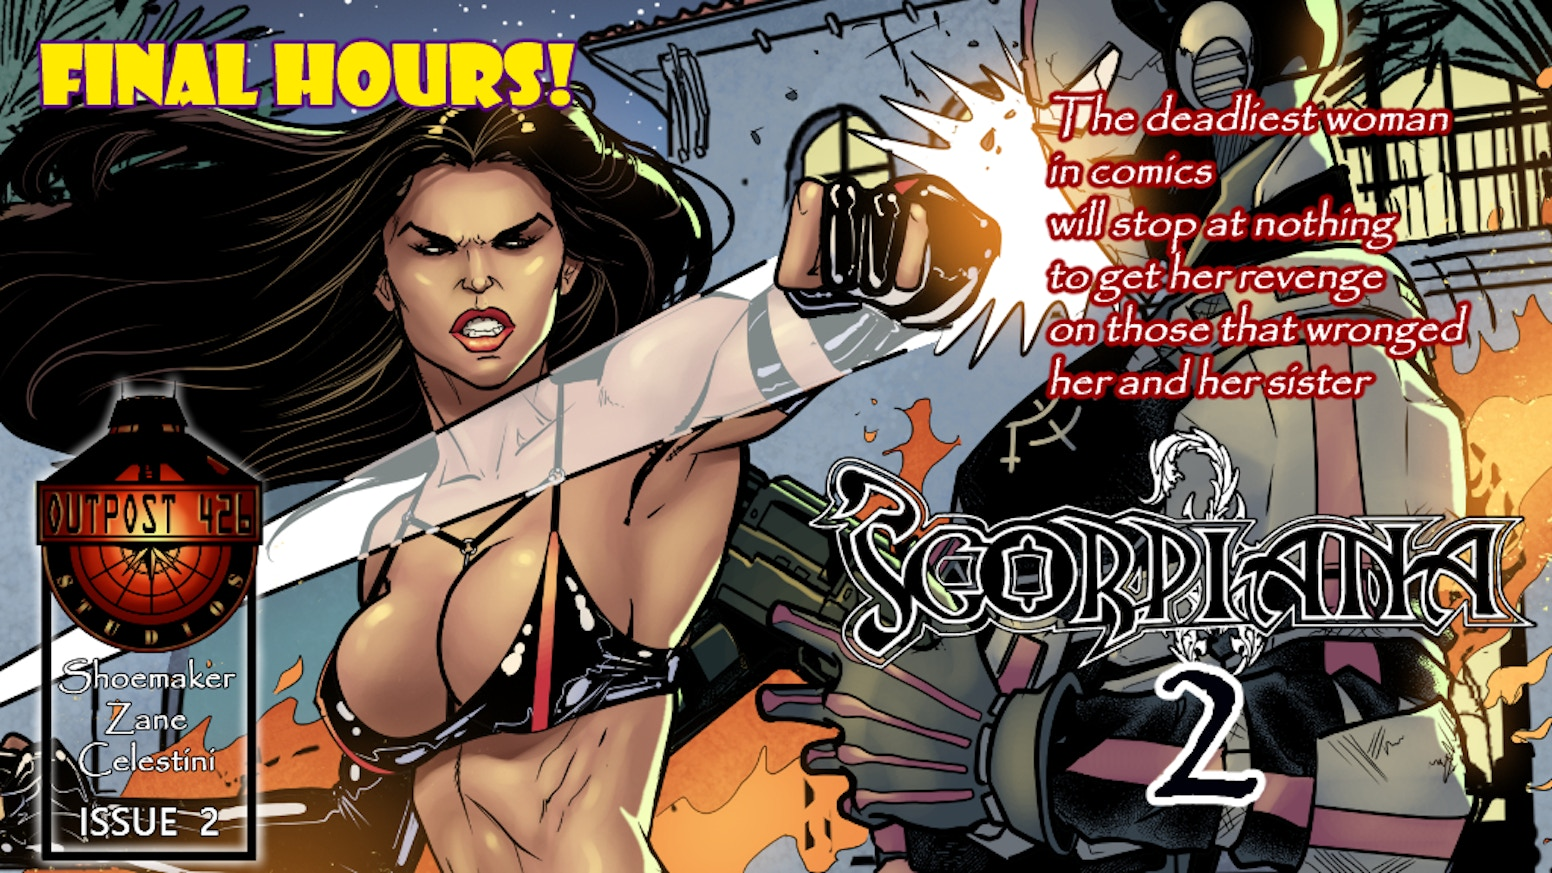 The second issue featuring the most dangerous woman in comics, Scorpiana!